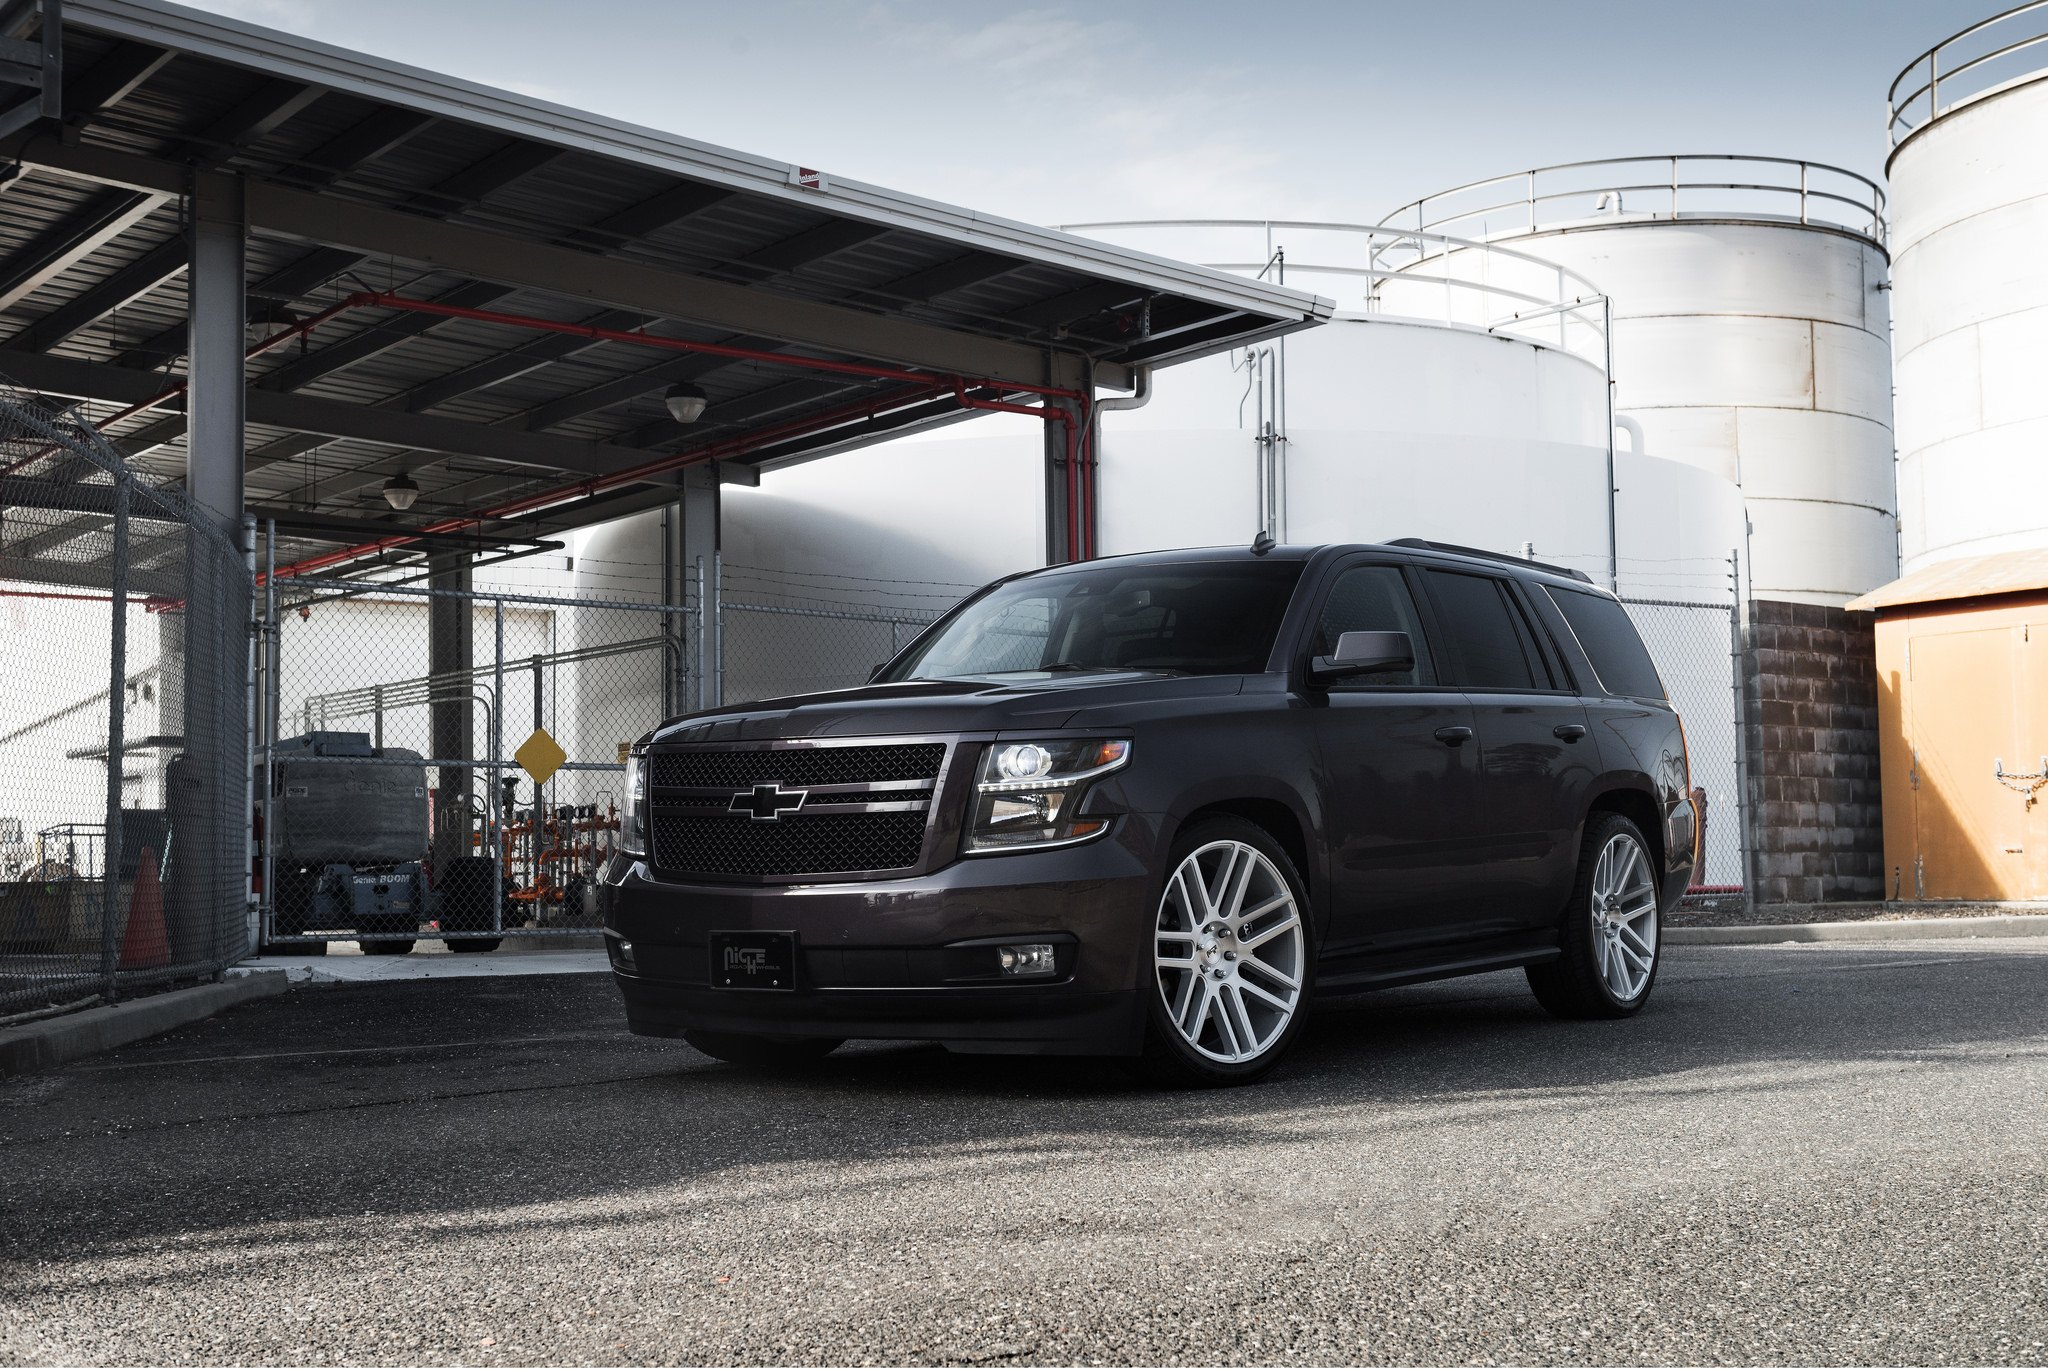 Niche Road Wheels >> Imposing Black Chevy Tahoe Shod In Chrome Niche Wheels